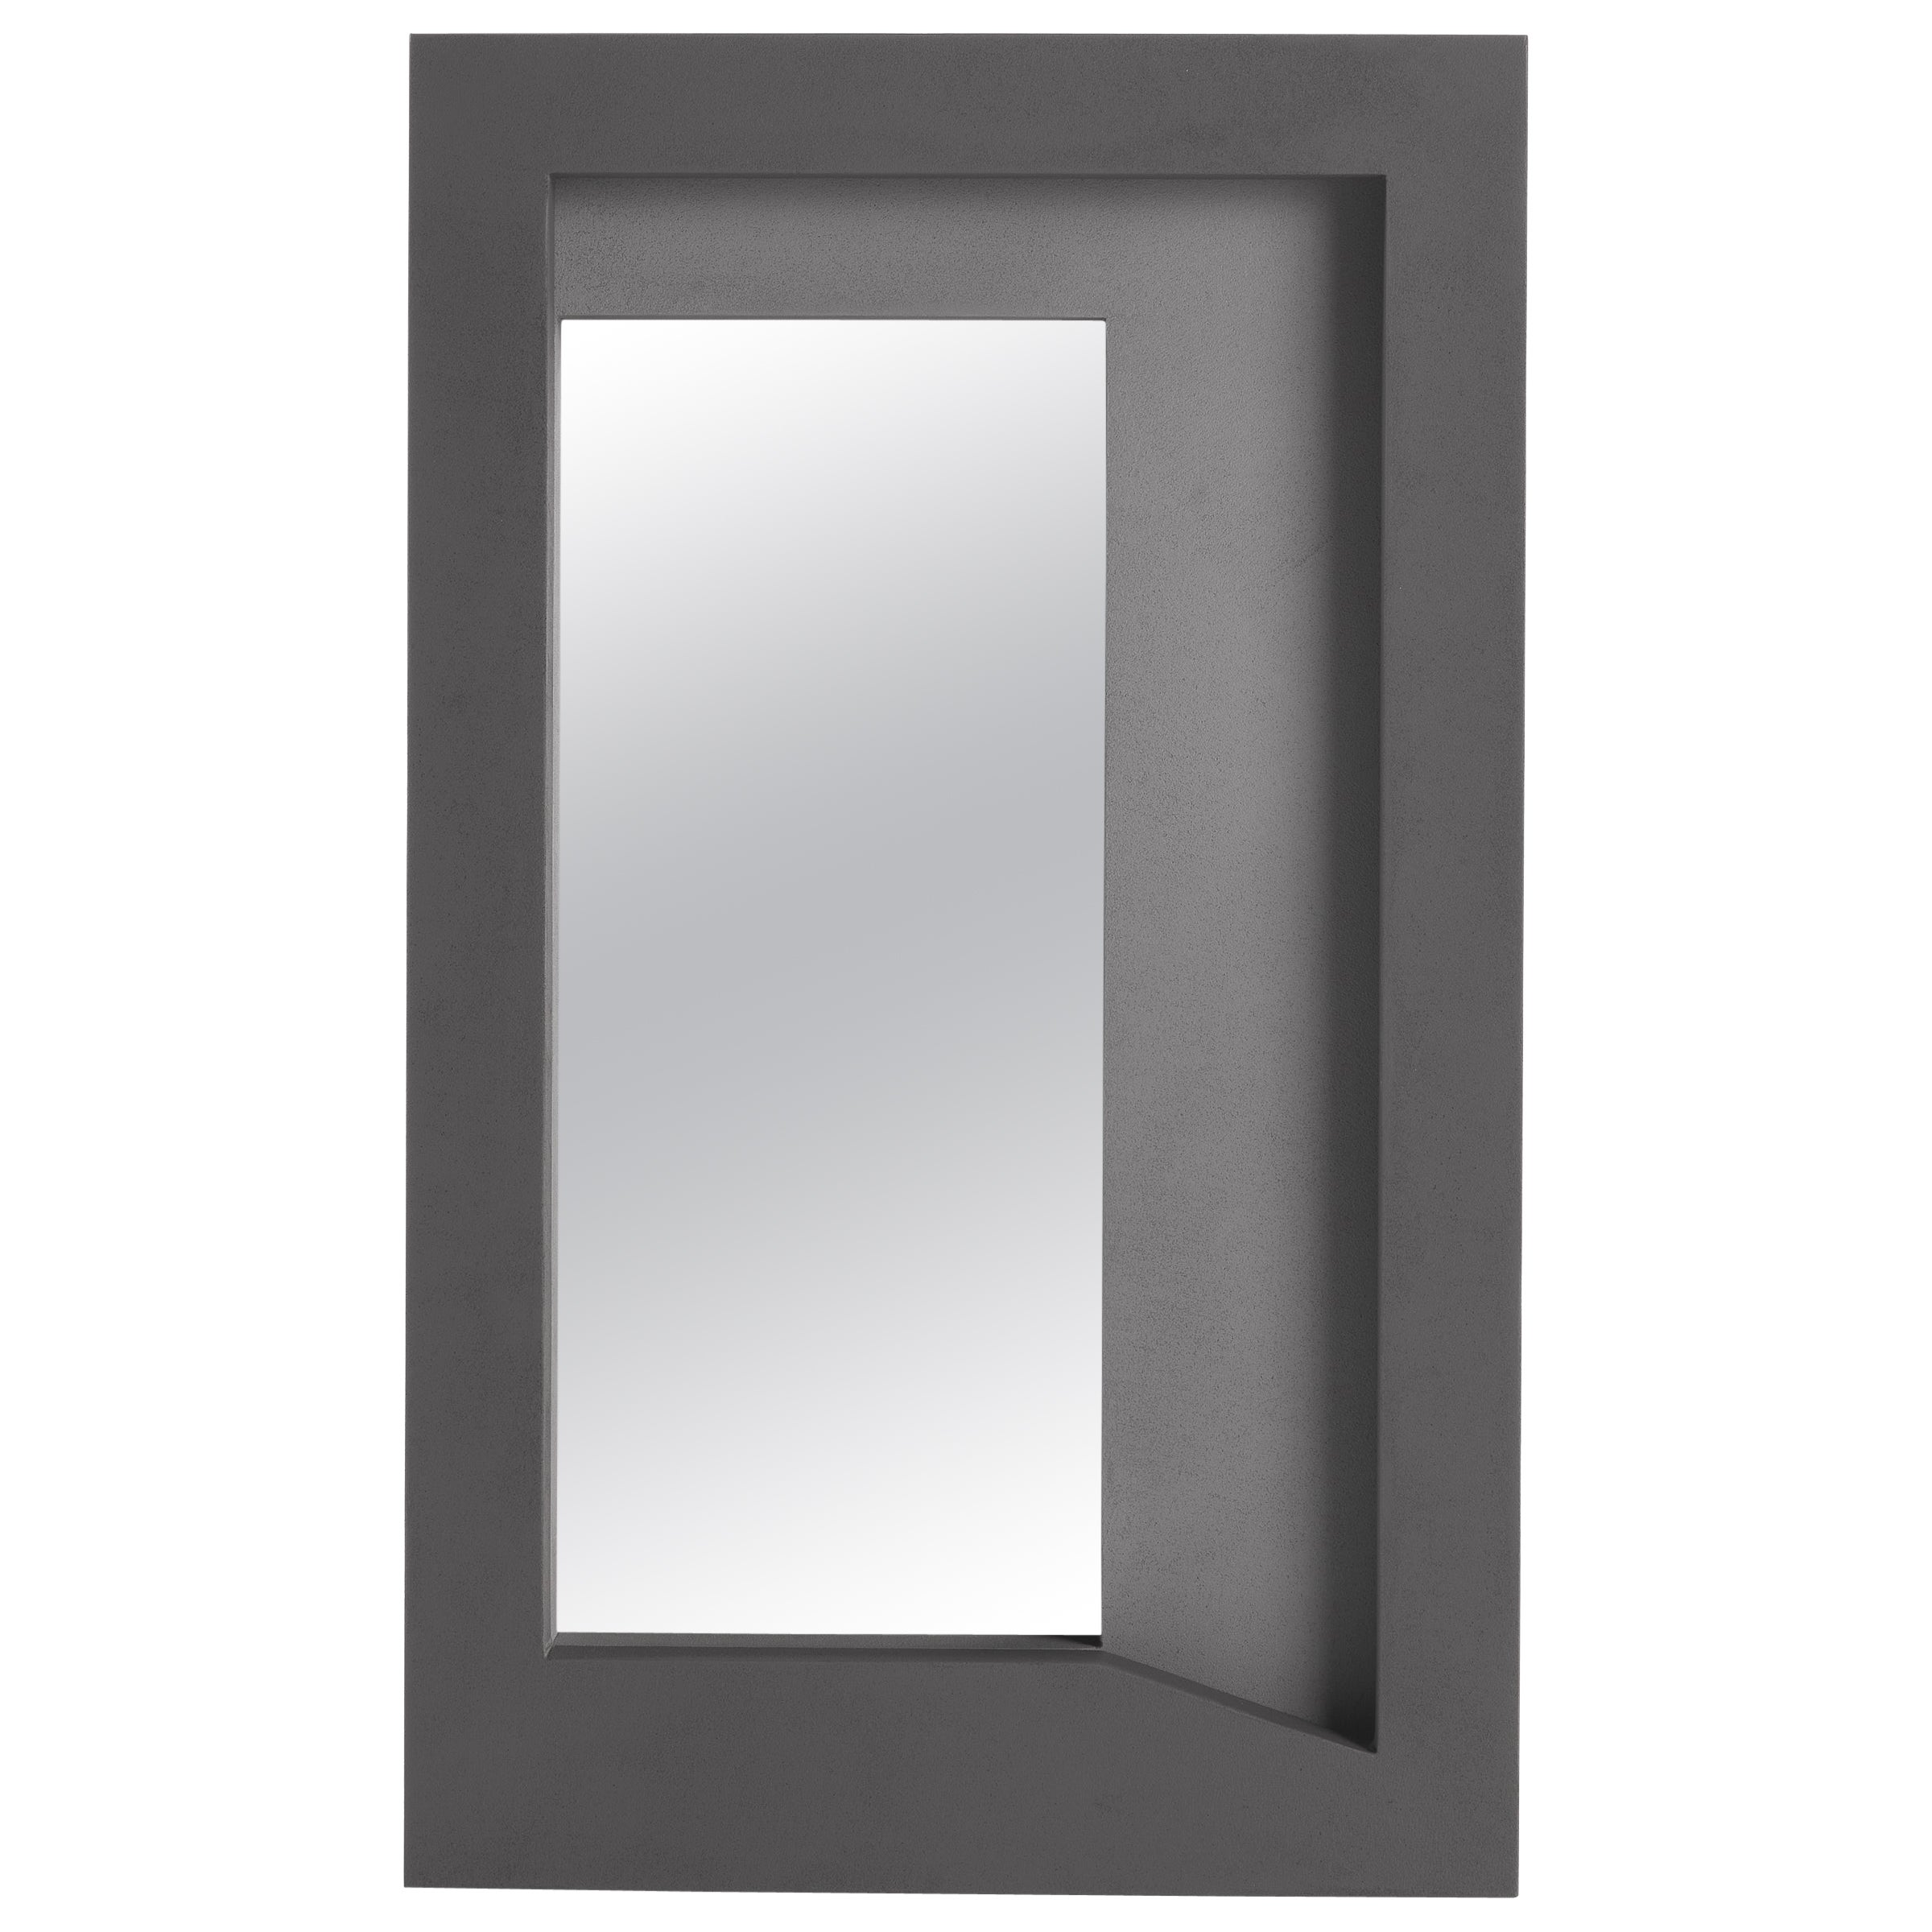 JCP Universe Small Undism Mirror by Gumdesign